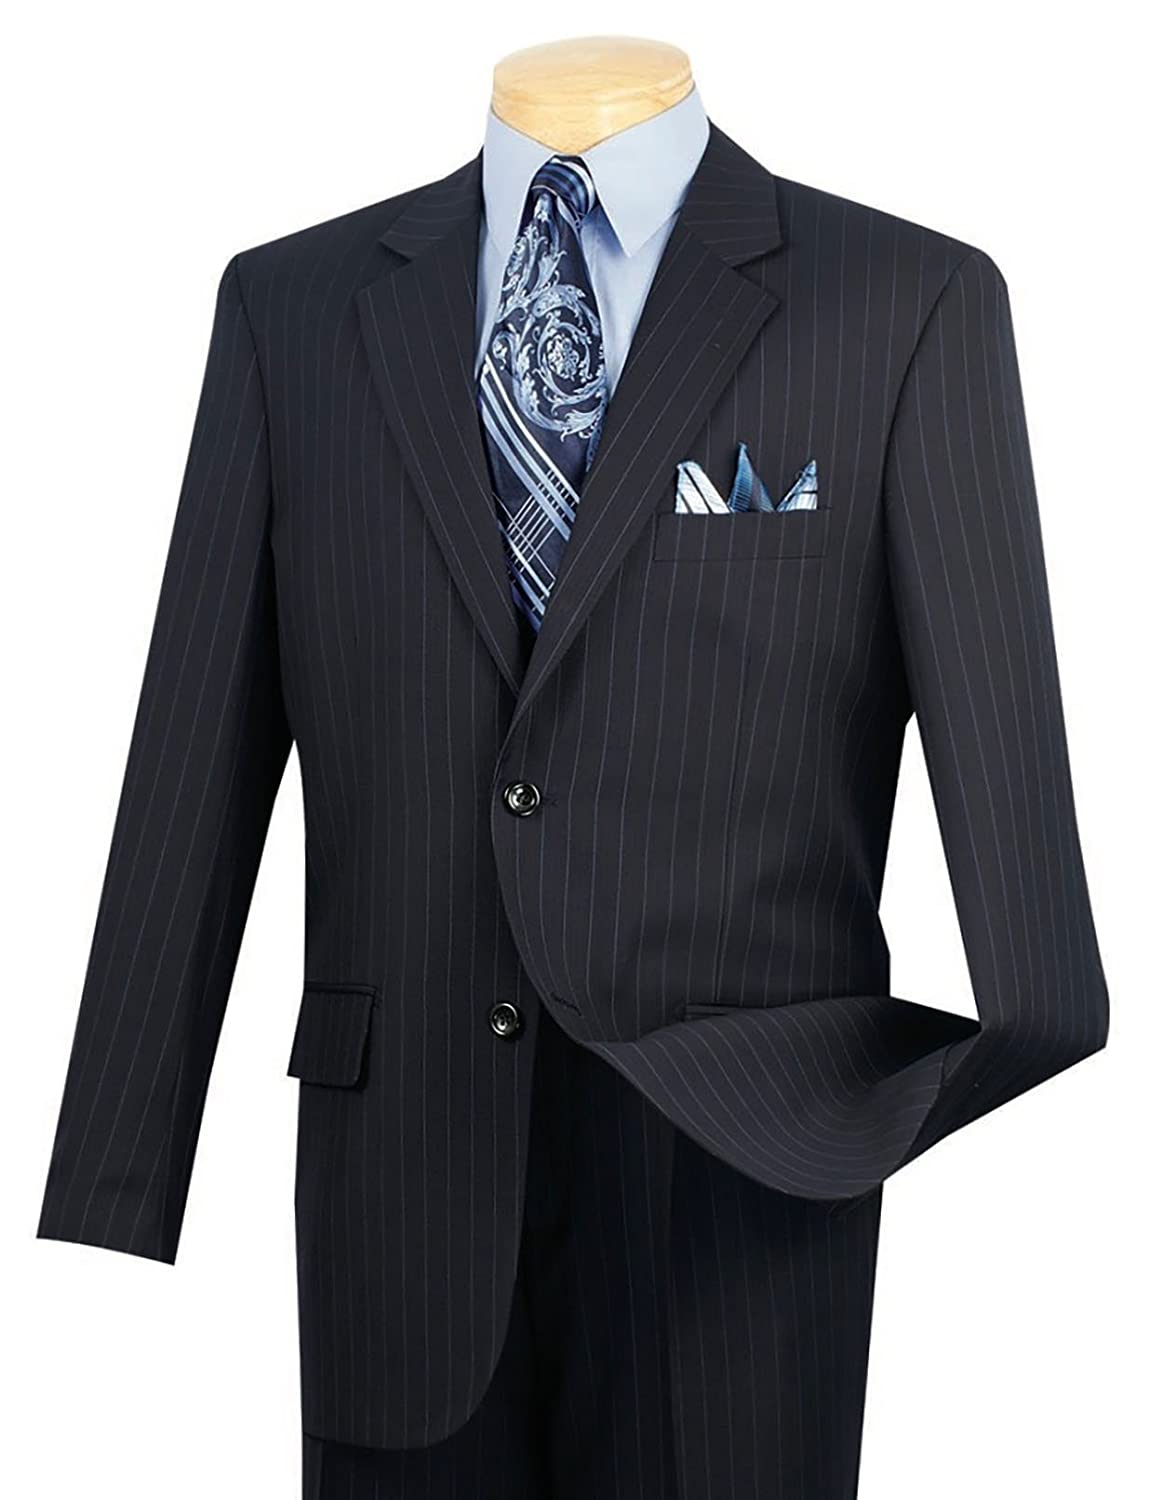 1940s Mens Suits | Gangster, Mobster, Zoot Suits VINCI Mens Pinstriped 2 Button Classic-Fit Suit New $99.95 AT vintagedancer.com